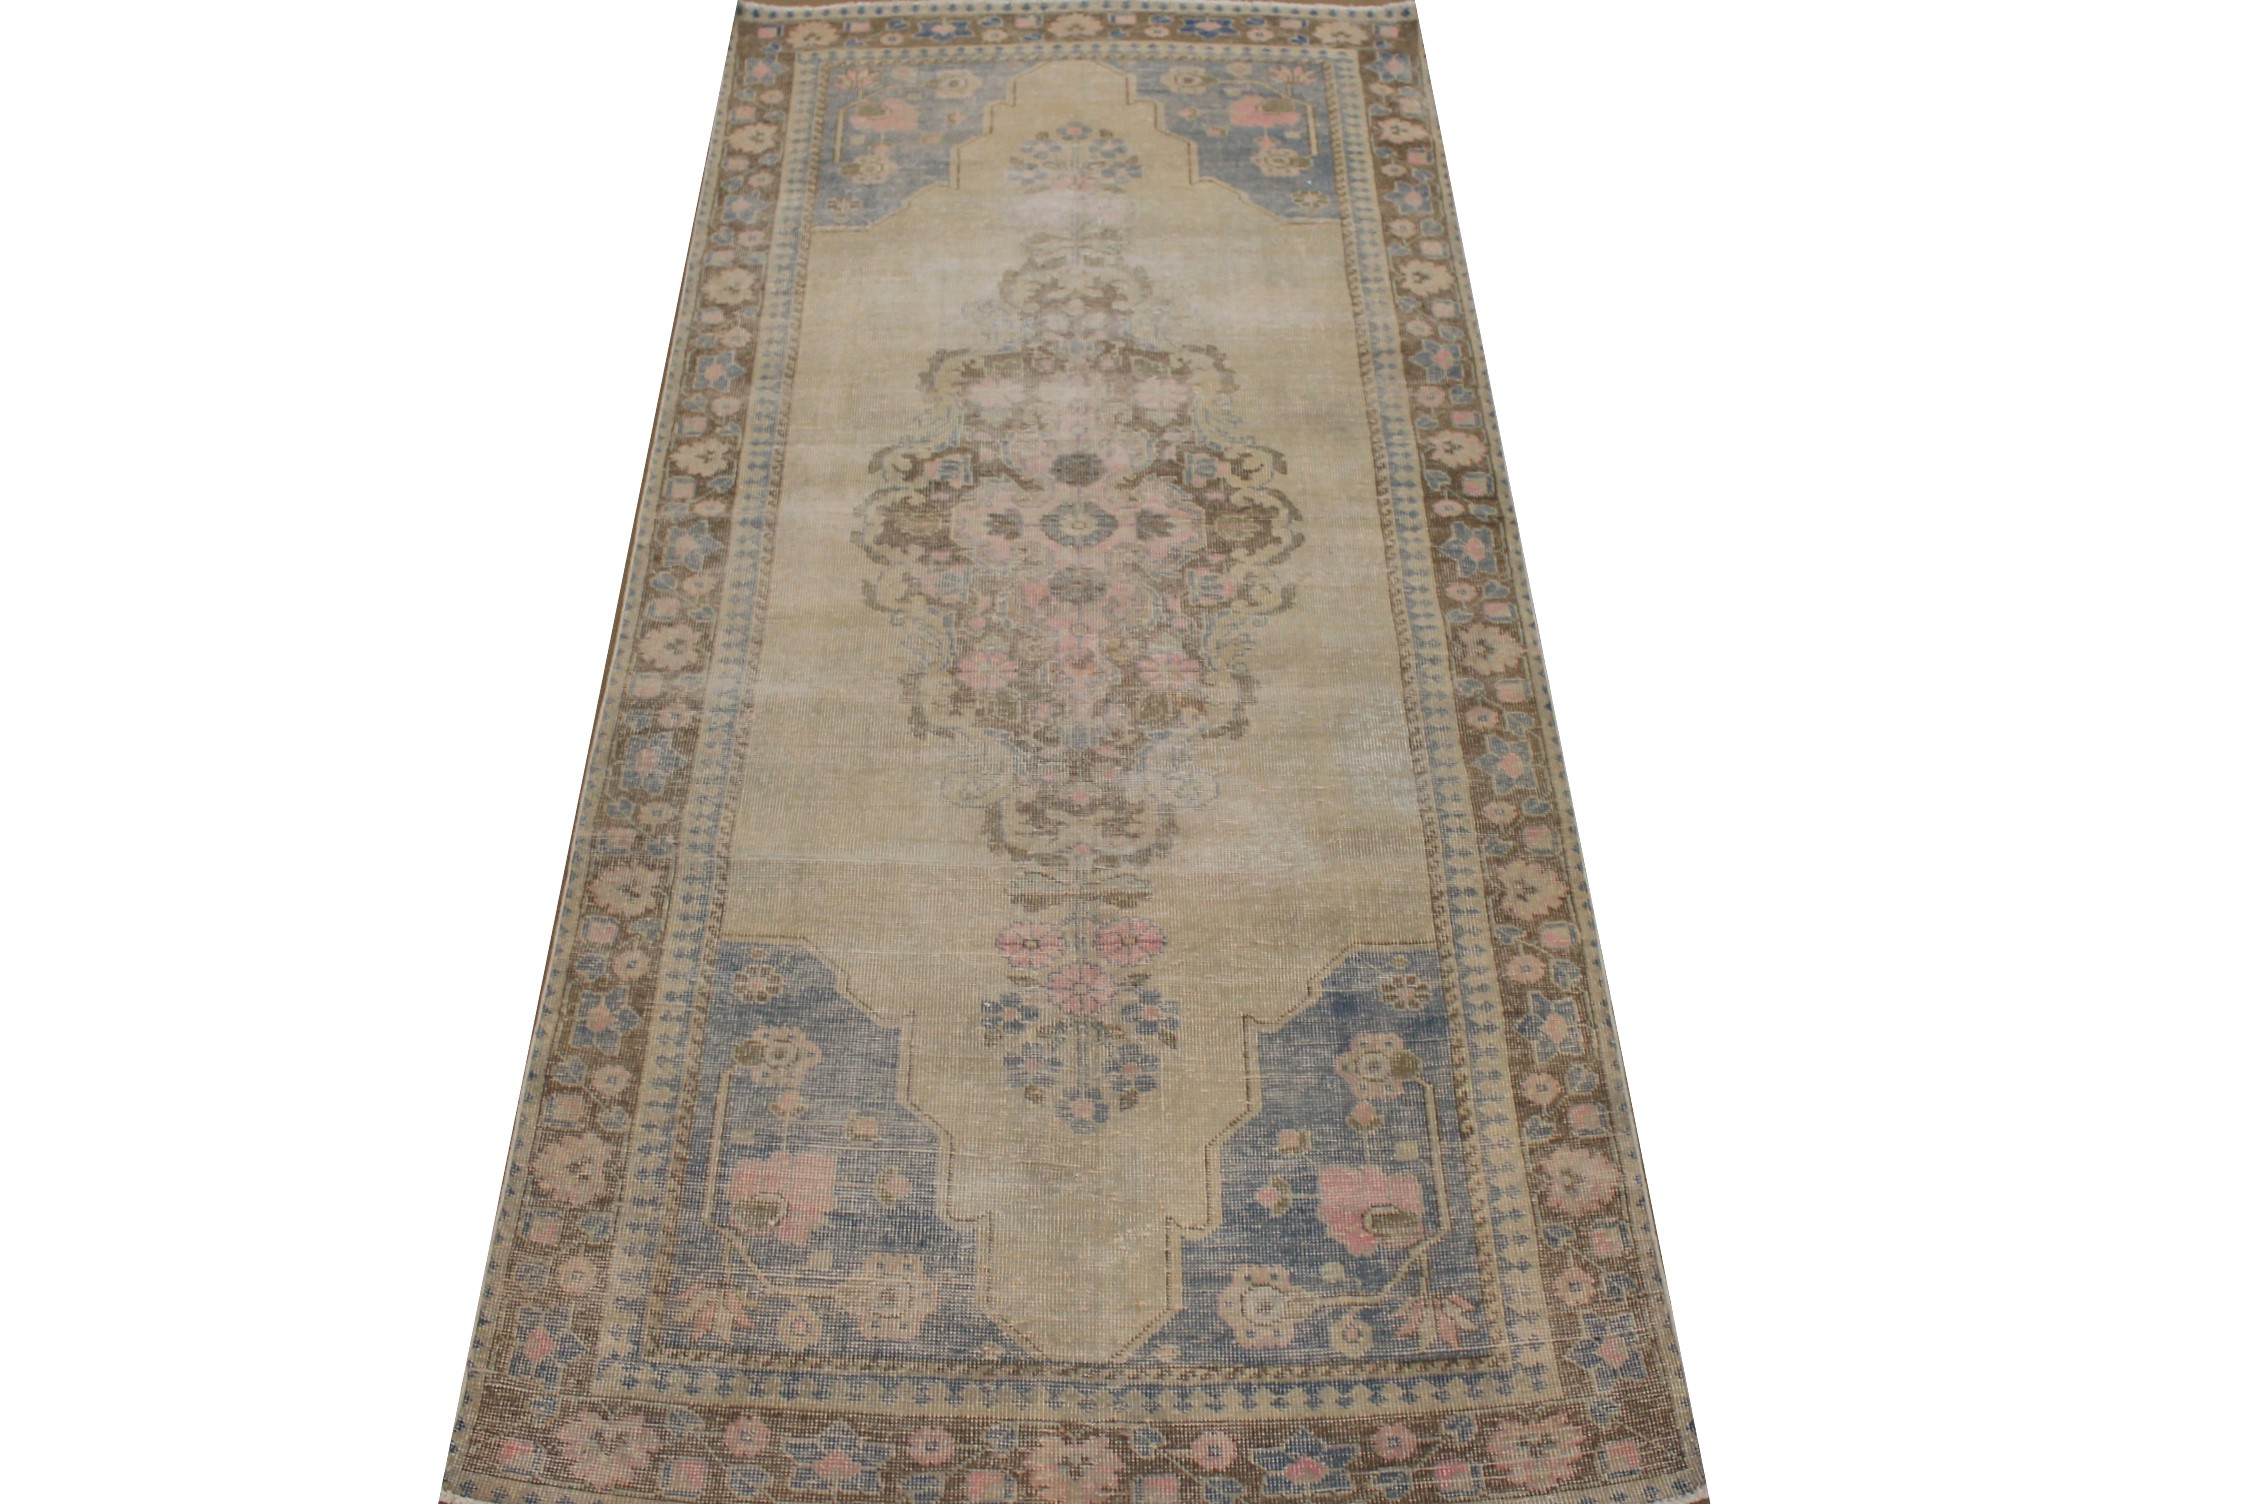 Wide Runner Vintage Hand Knotted Wool Area Rug - MR025321